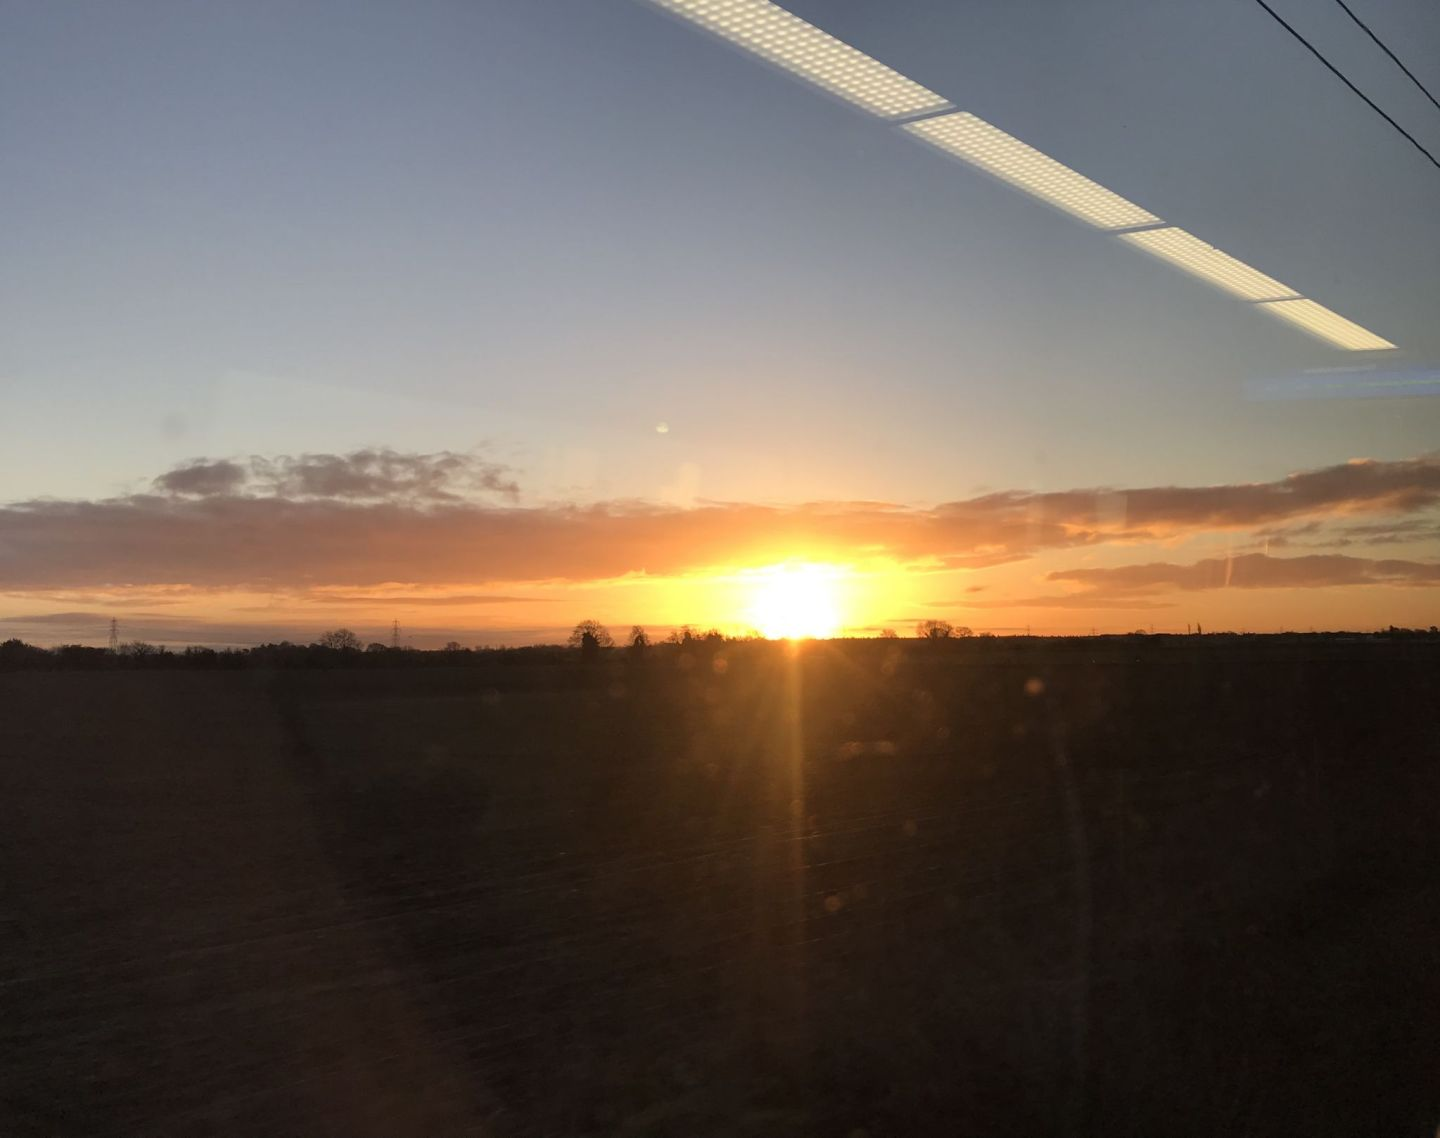 Sun rising on the way to London